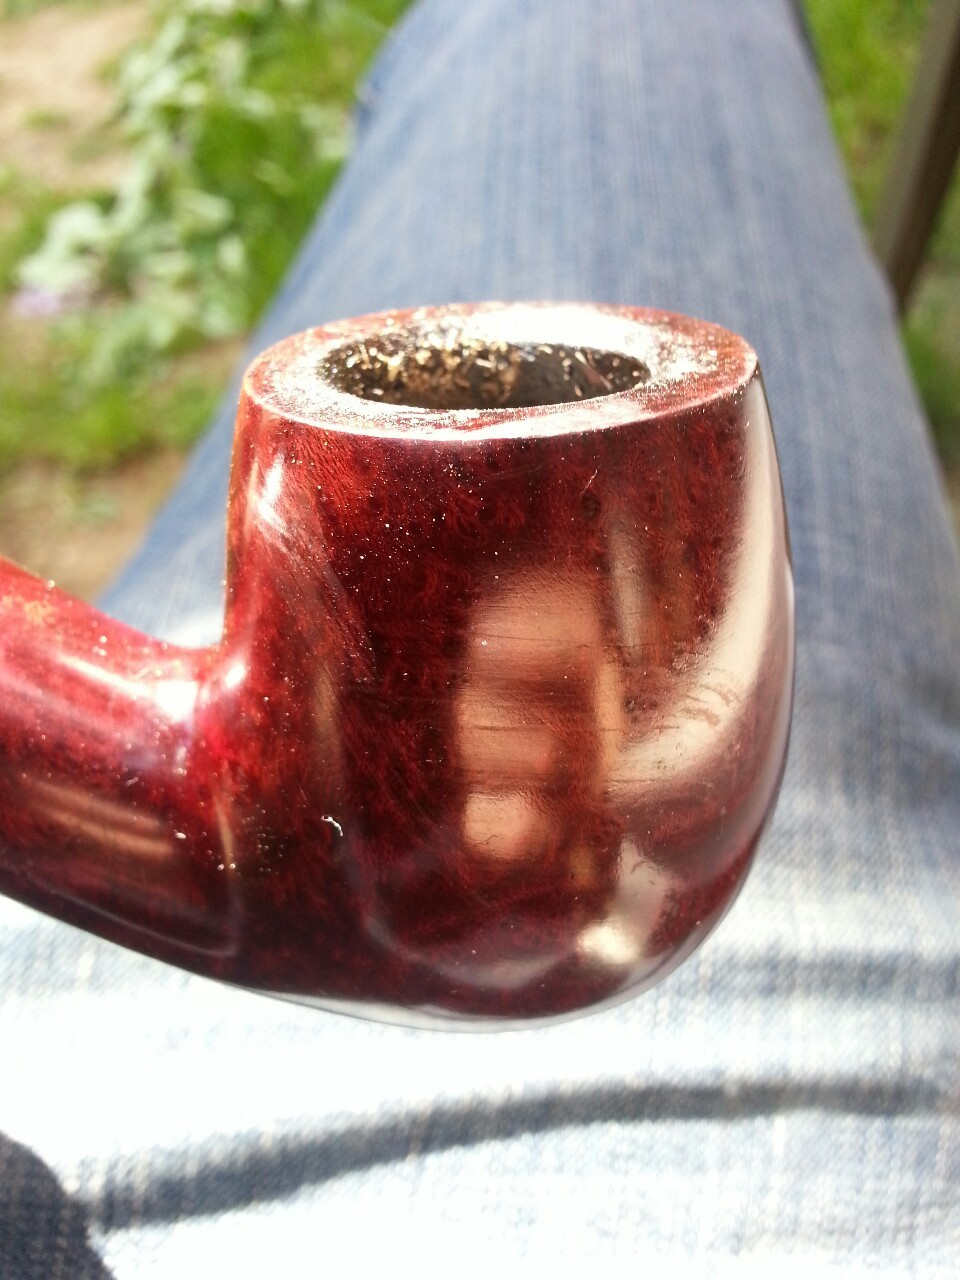 Back to Paris, enjoying a good pipe :-)